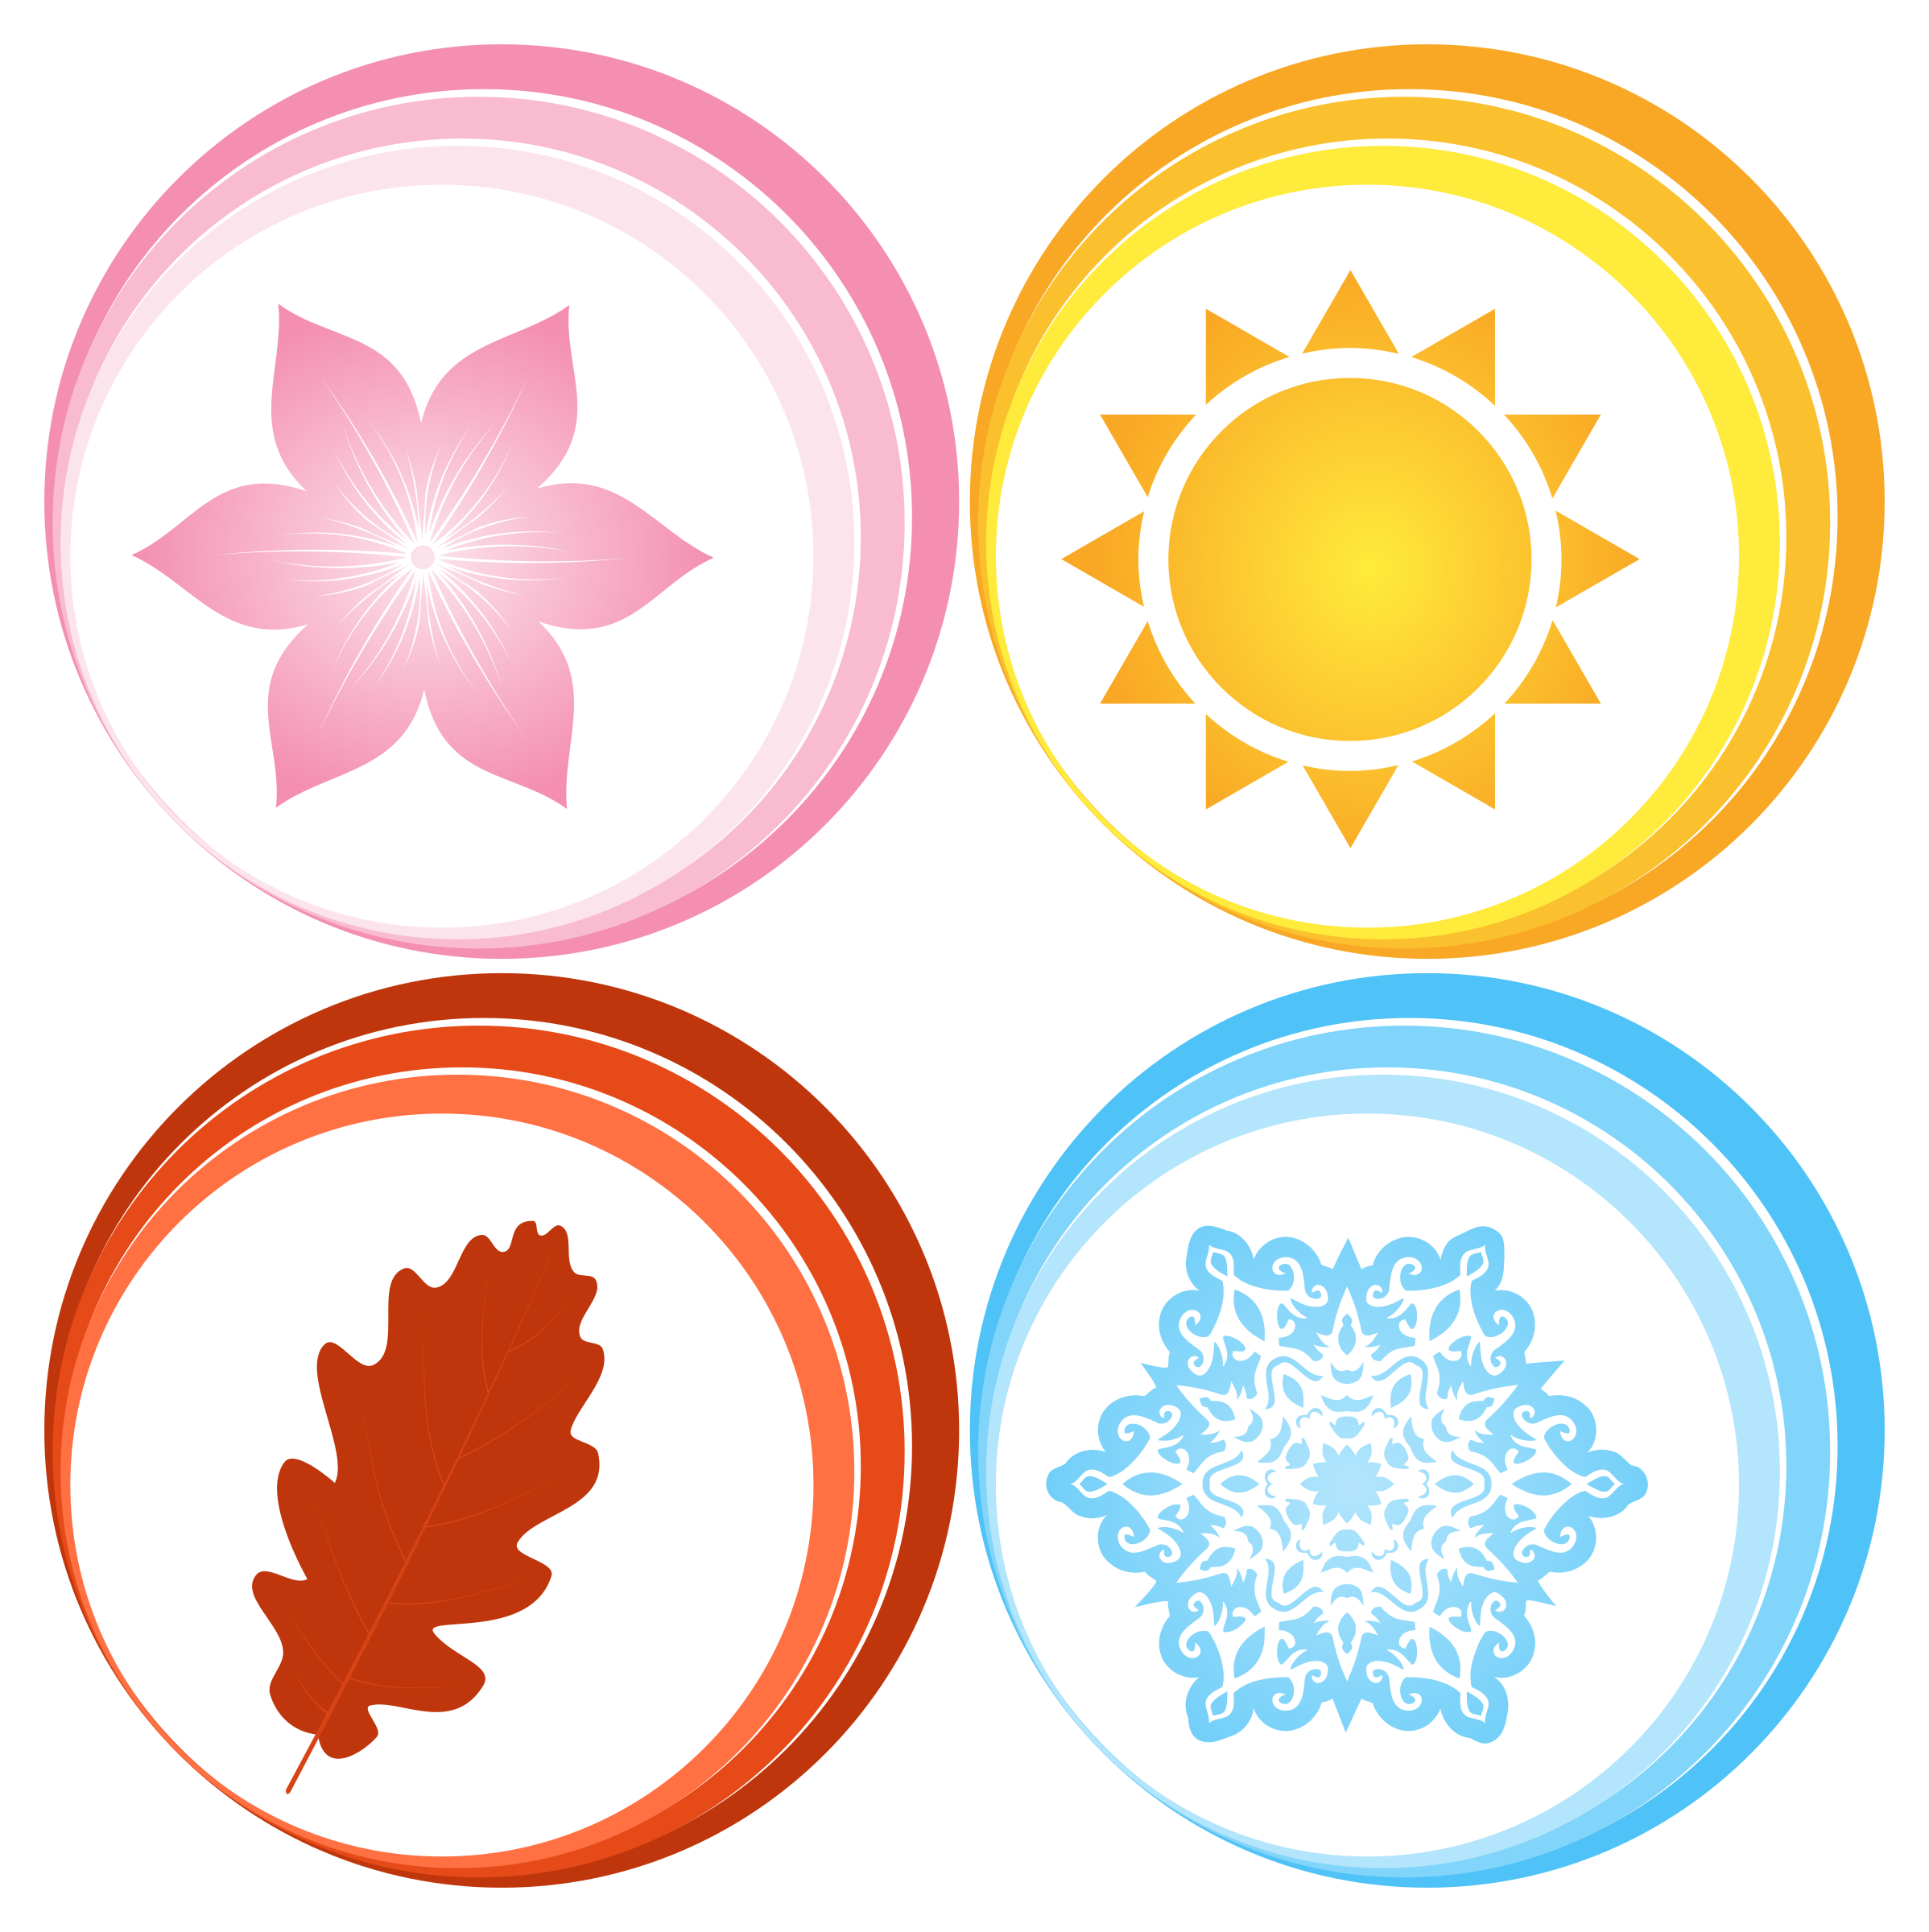 Symbols for Four Seasons Vector Clipart image.